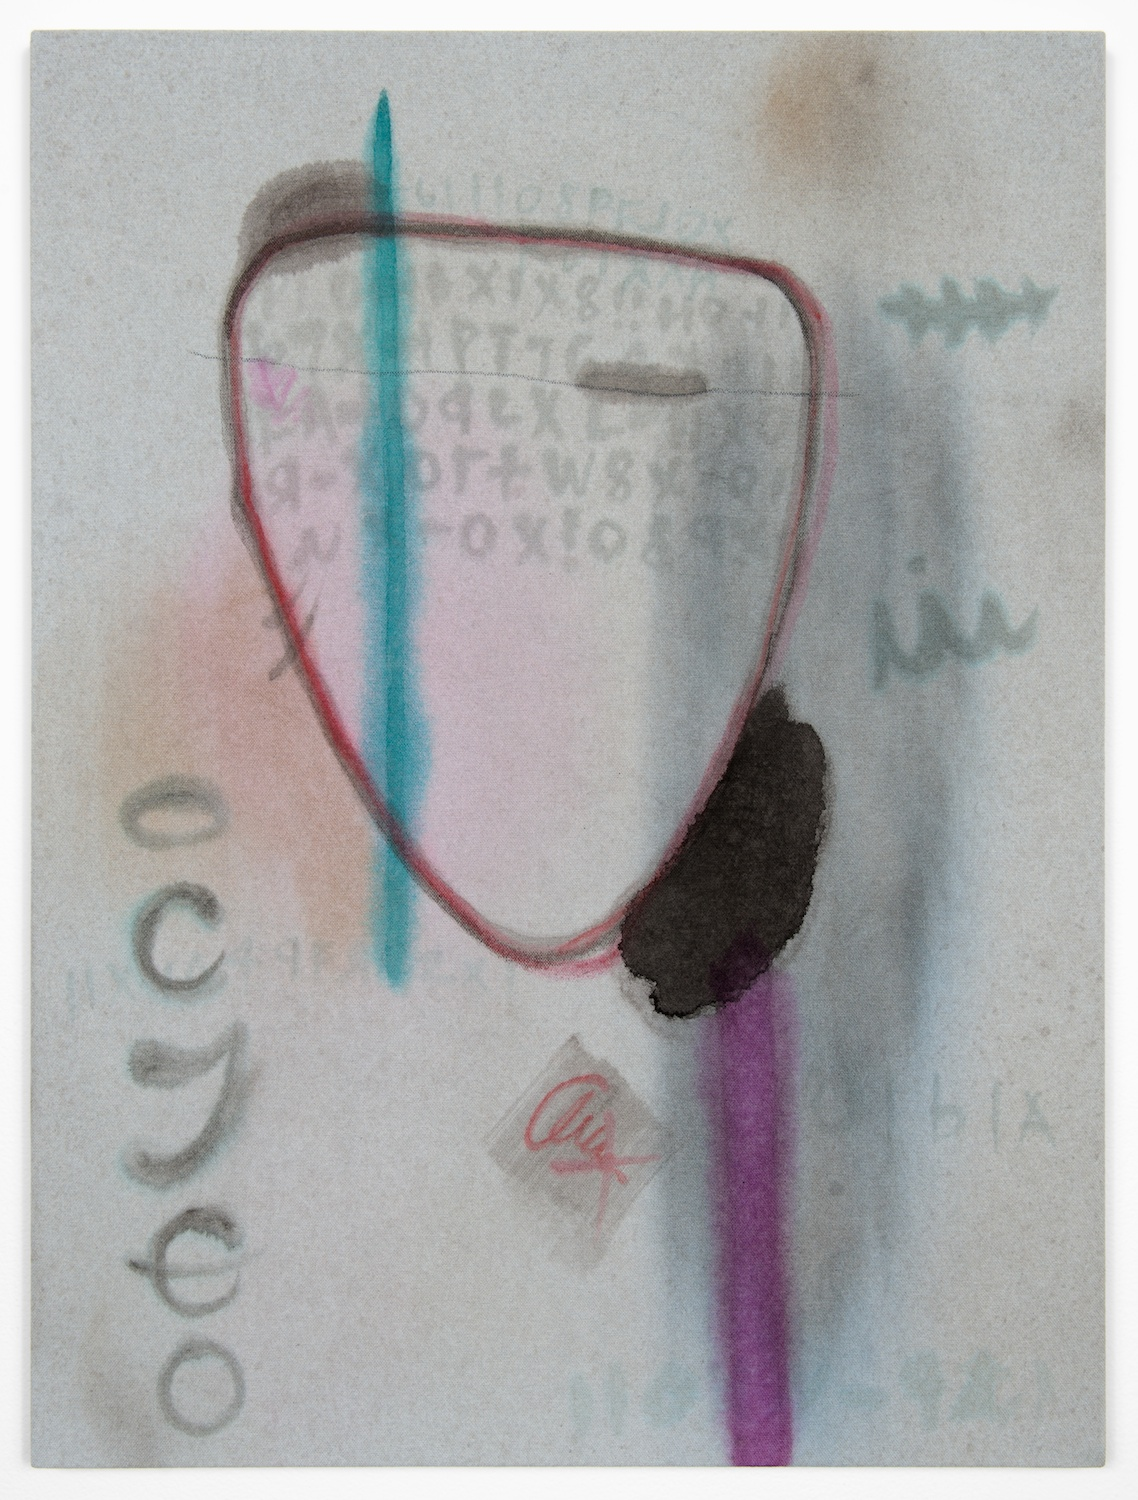 Amanda Ross-Ho  Untitled Painting (AMERICAN IDIOT)  2013 Acrylic and oil pastel on dyed canvas 24h x 18w in ARH038